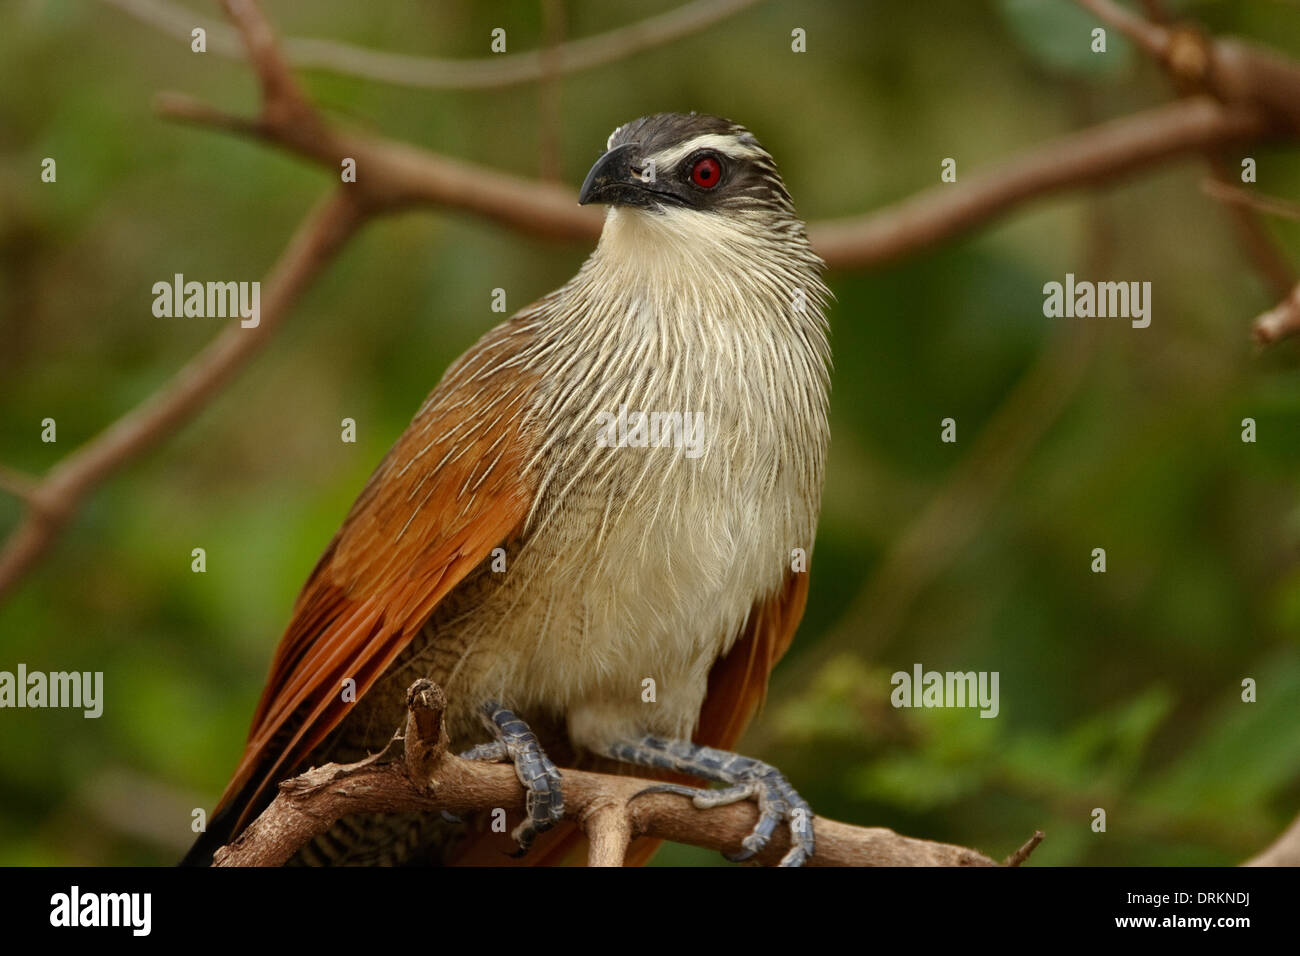 White-browed Coucal (Centropus superciliosus), - Stock Image